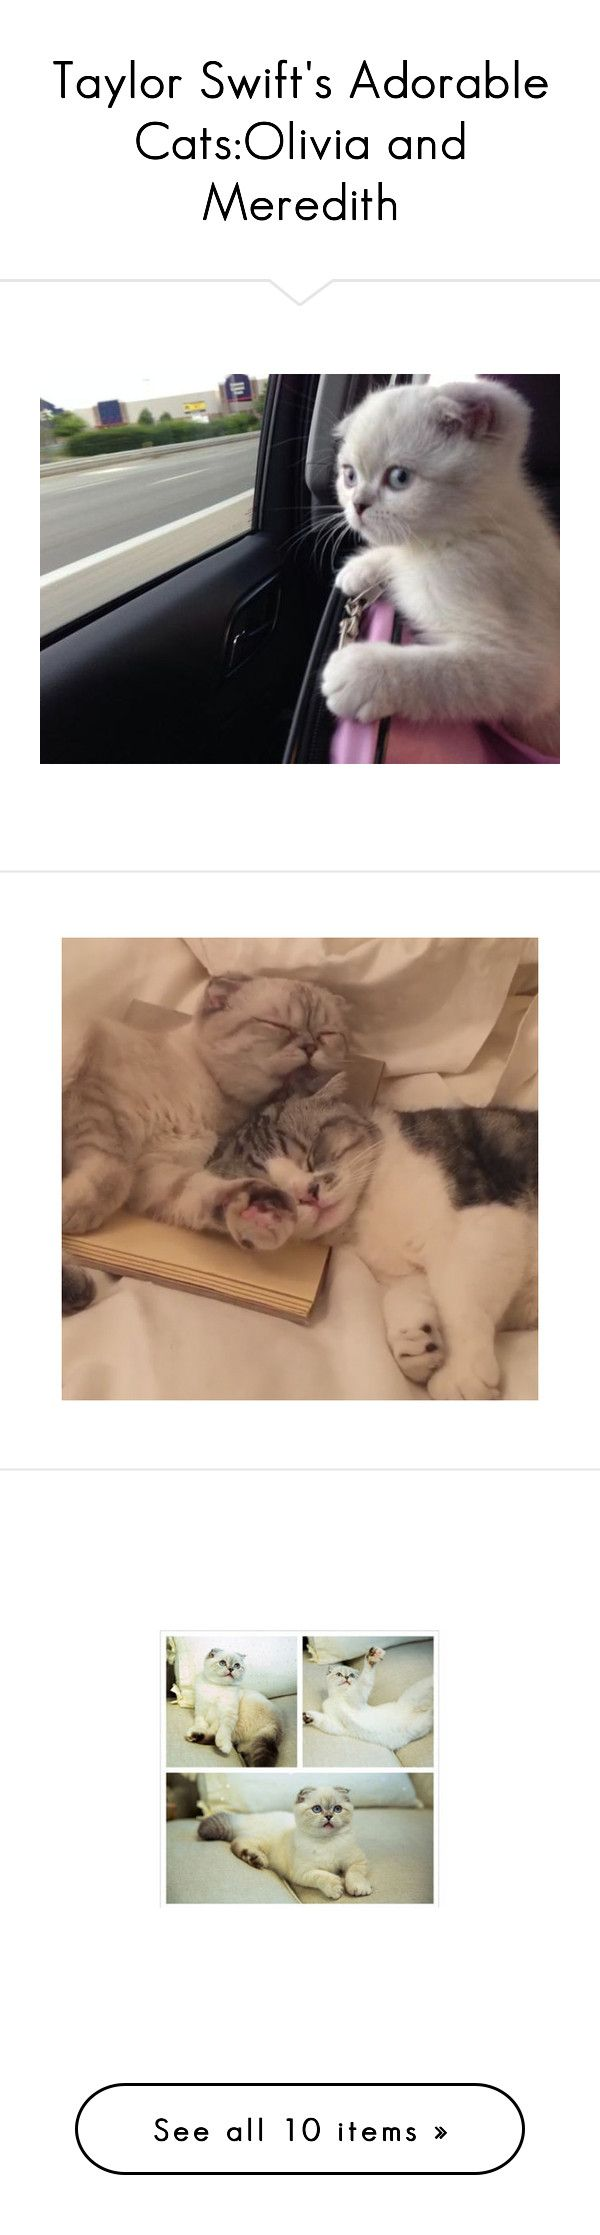 """""""Taylor Swift's Adorable Cats:Olivia and Meredith"""" by fashionsnumber1fan on Polyvore featuring pictures, home, home decor, clocks, kitty cat clock, kitty alarm clock, kitty clock, rooster home decor, rooster alarm clock and cats"""